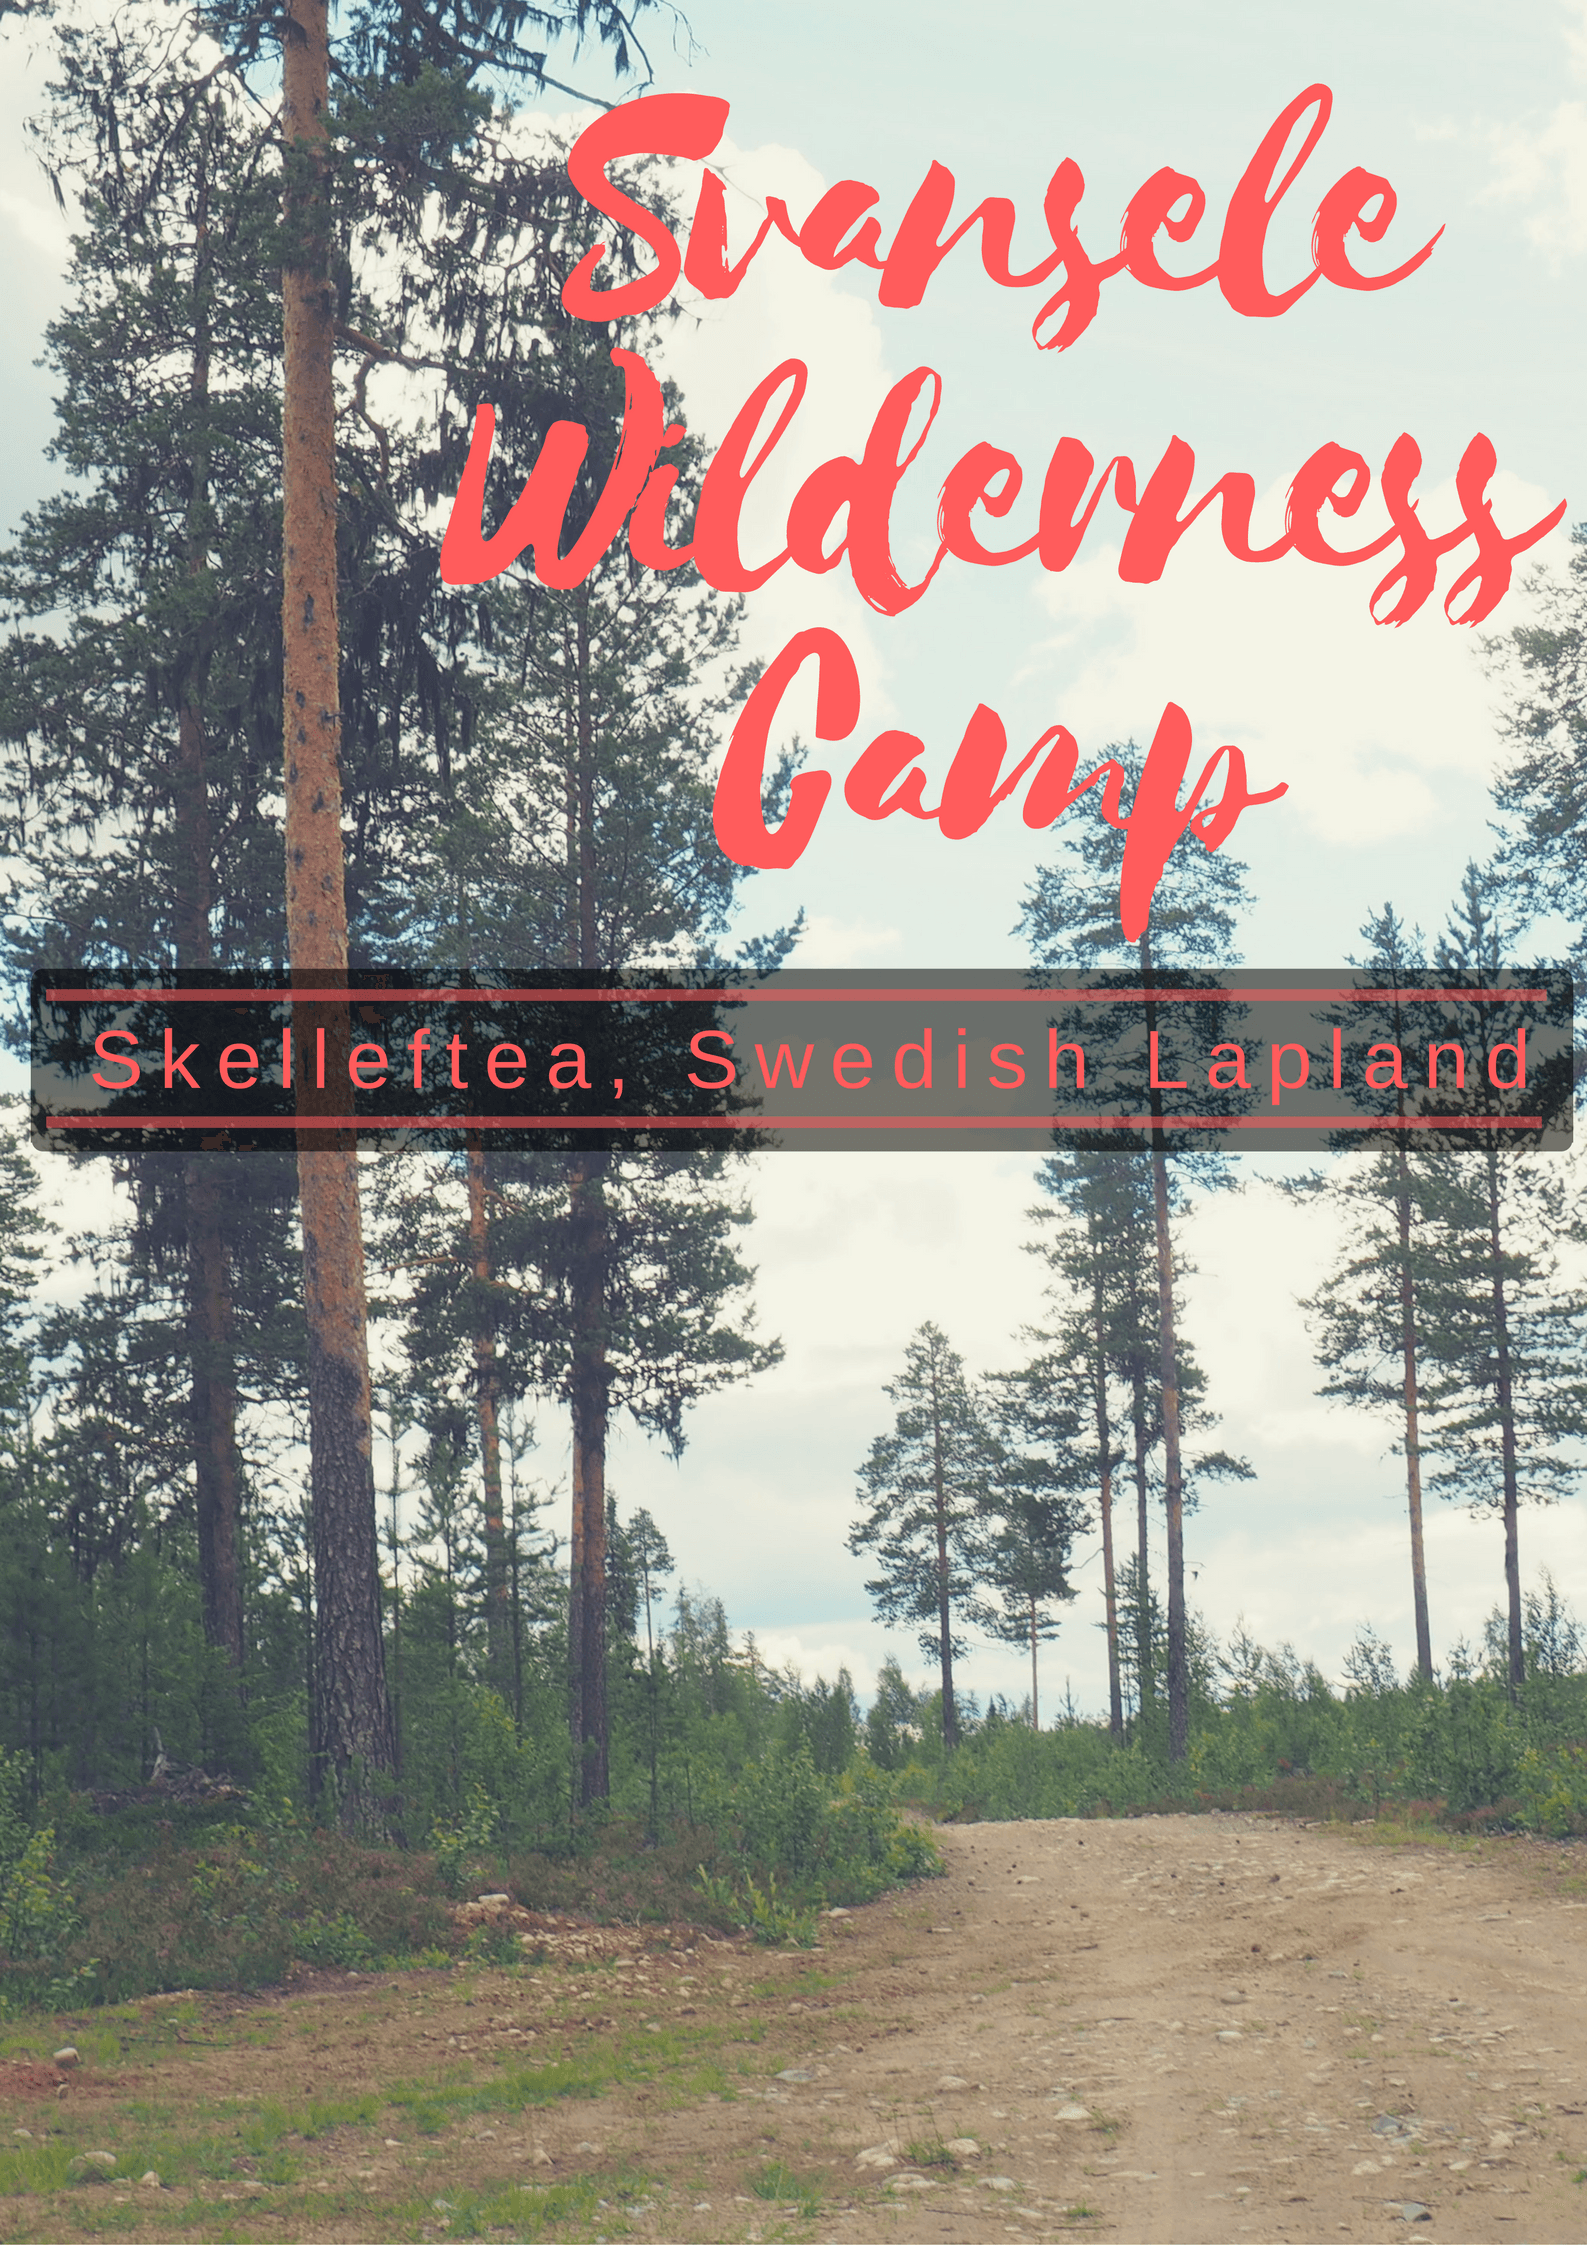 Svansele Wilderness Camp, in northern Sweden, offers outdoor activities from mild and relaxing to adventurous and thrilling!